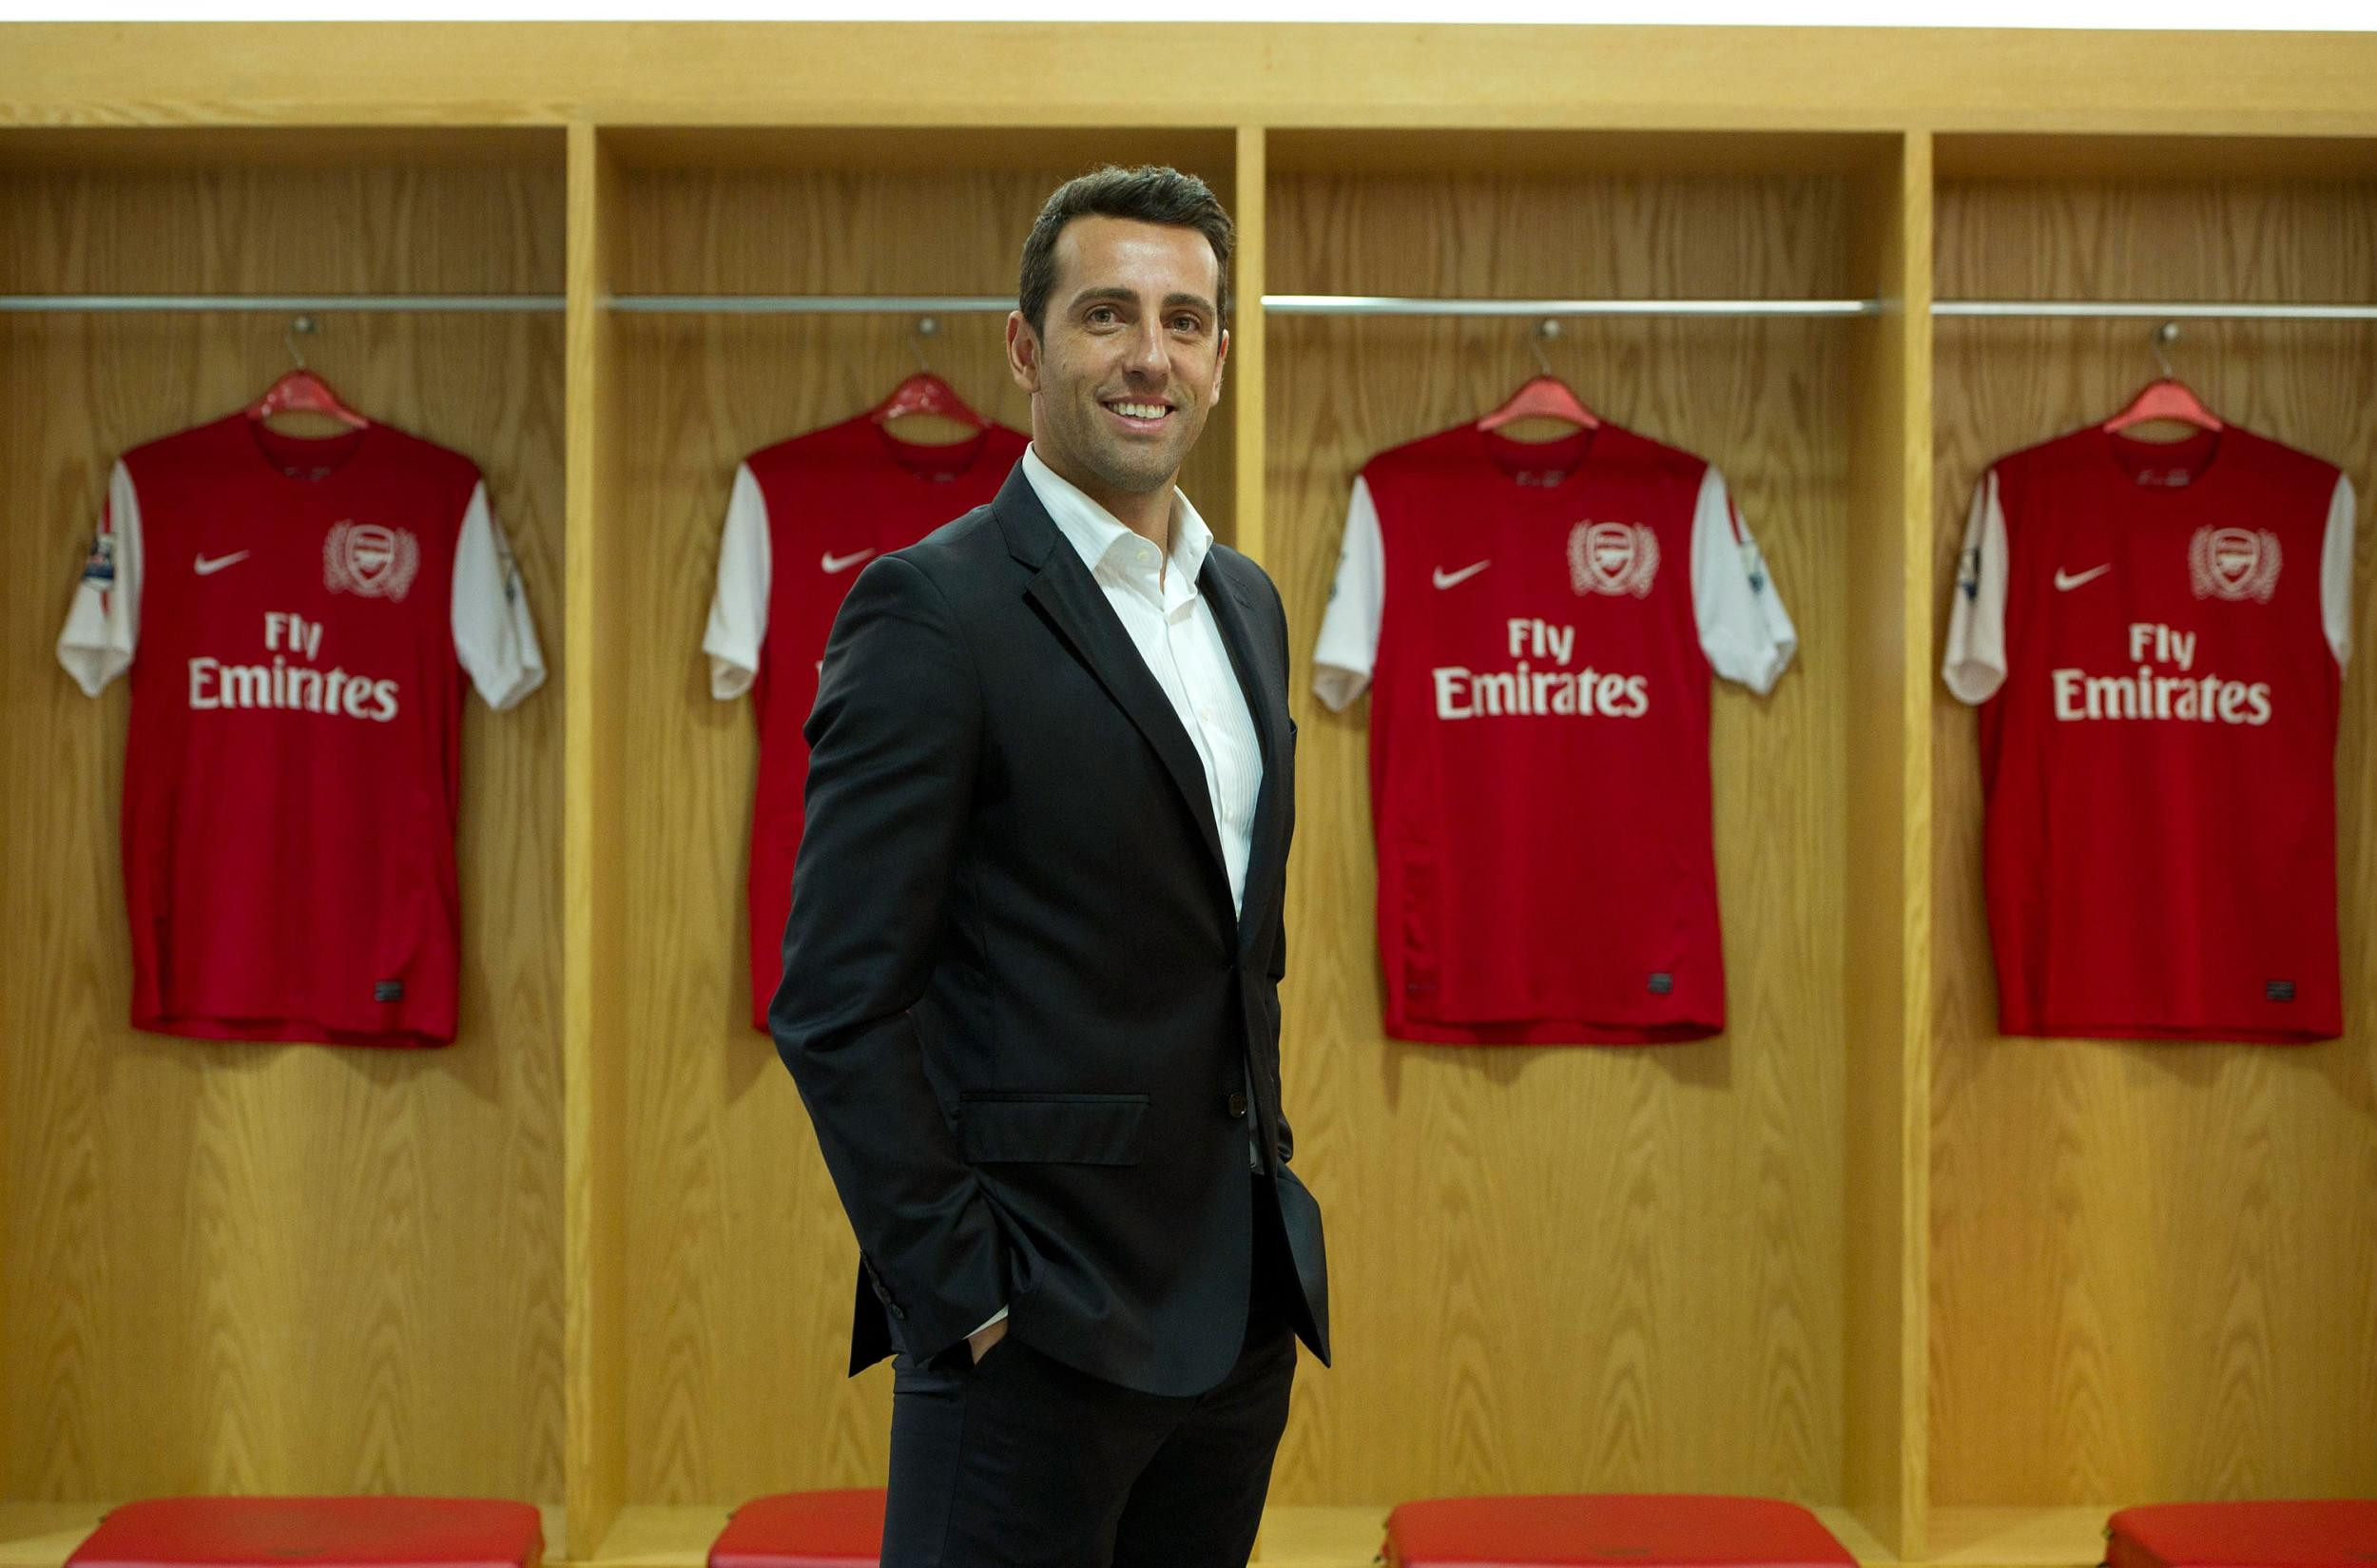 Arsenal confirms the appointment of Edu as their new technical director?